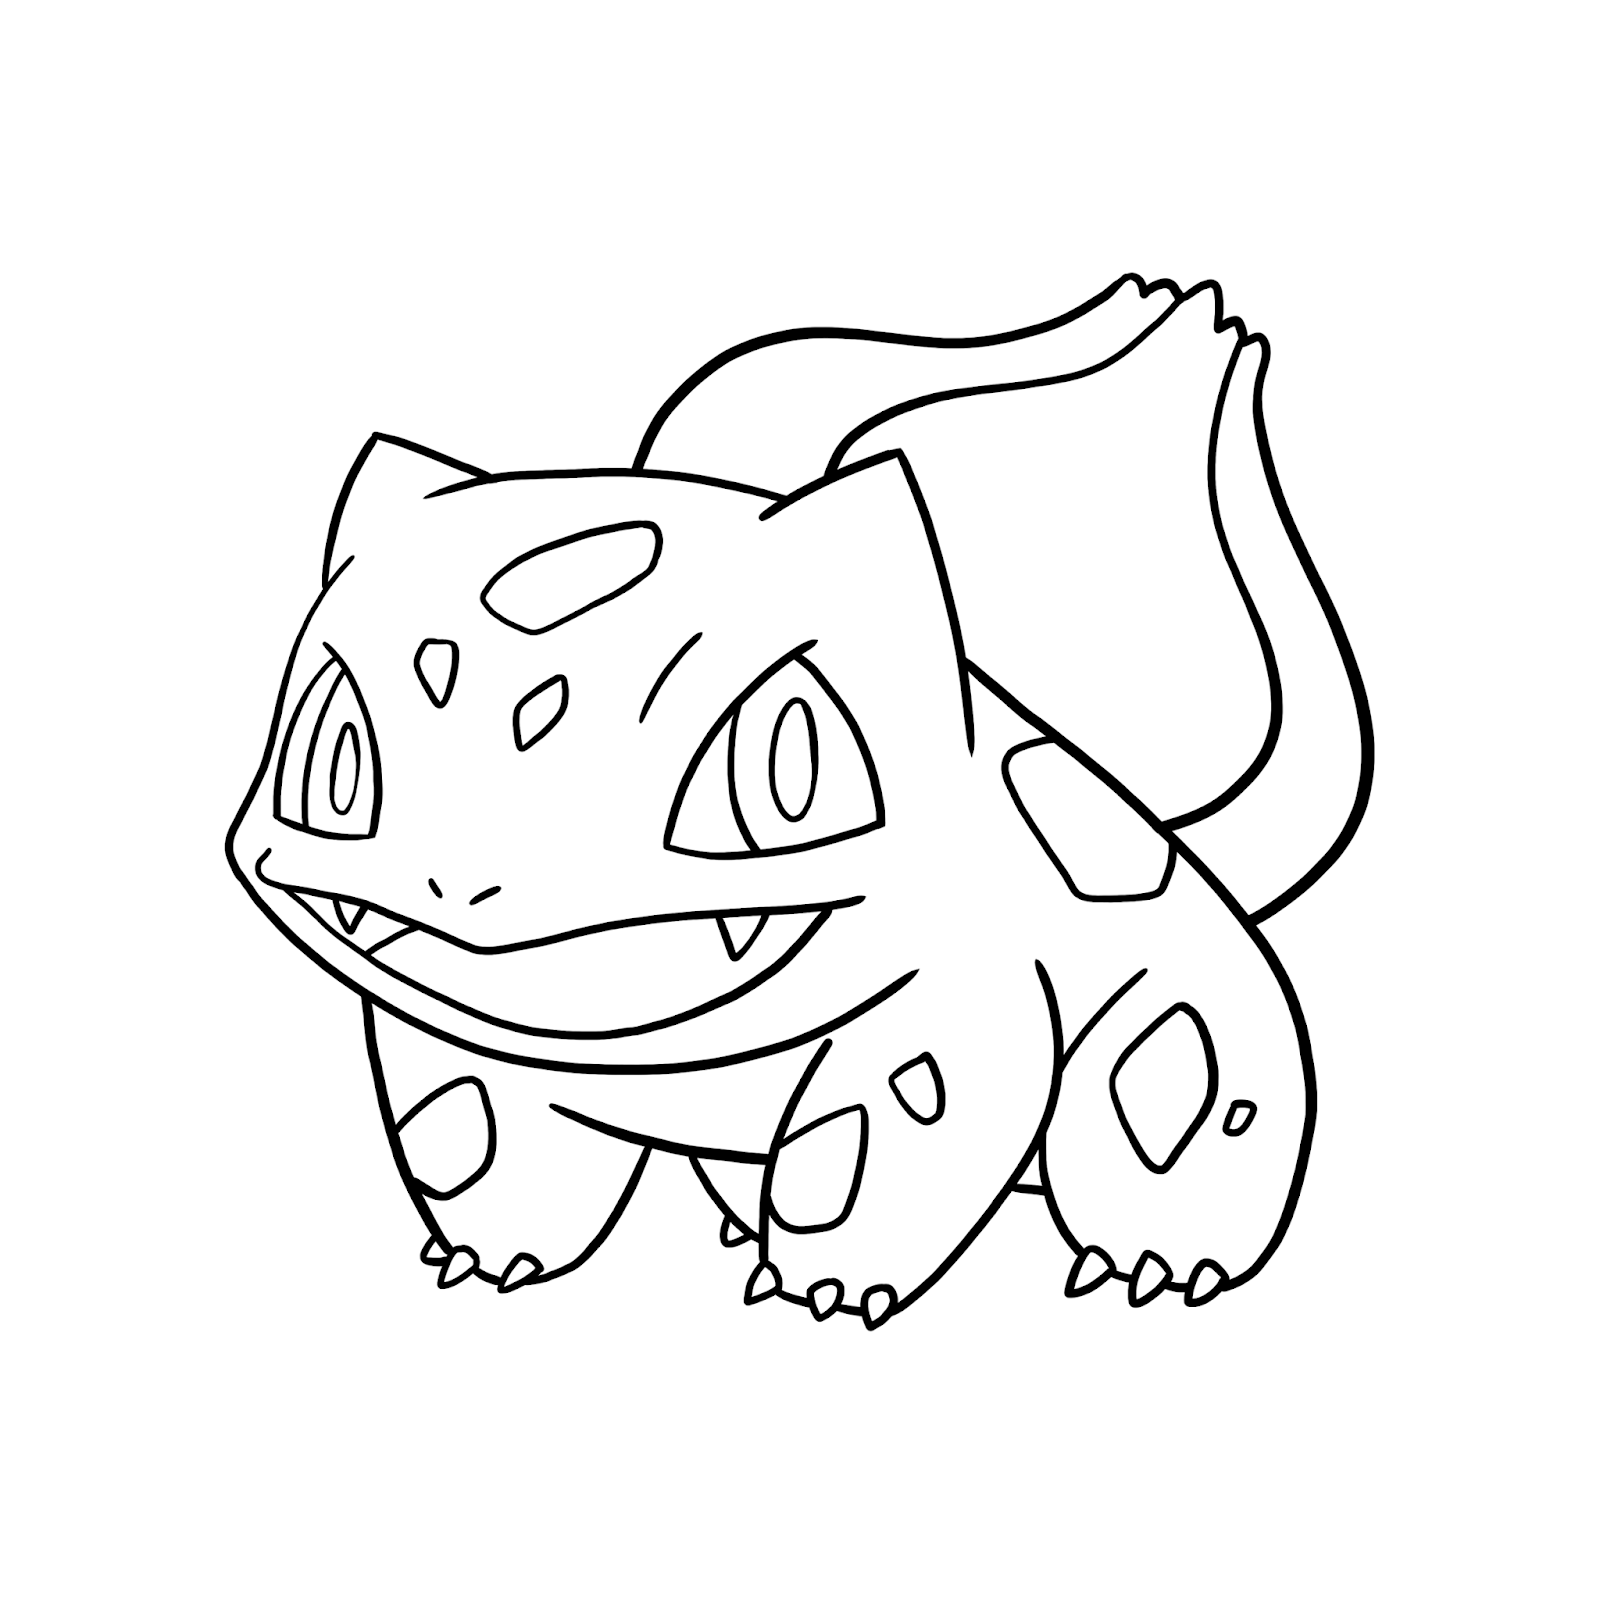 pictures of pokemon to color pokemon coloring pages join your favorite pokemon on an pokemon pictures of to color